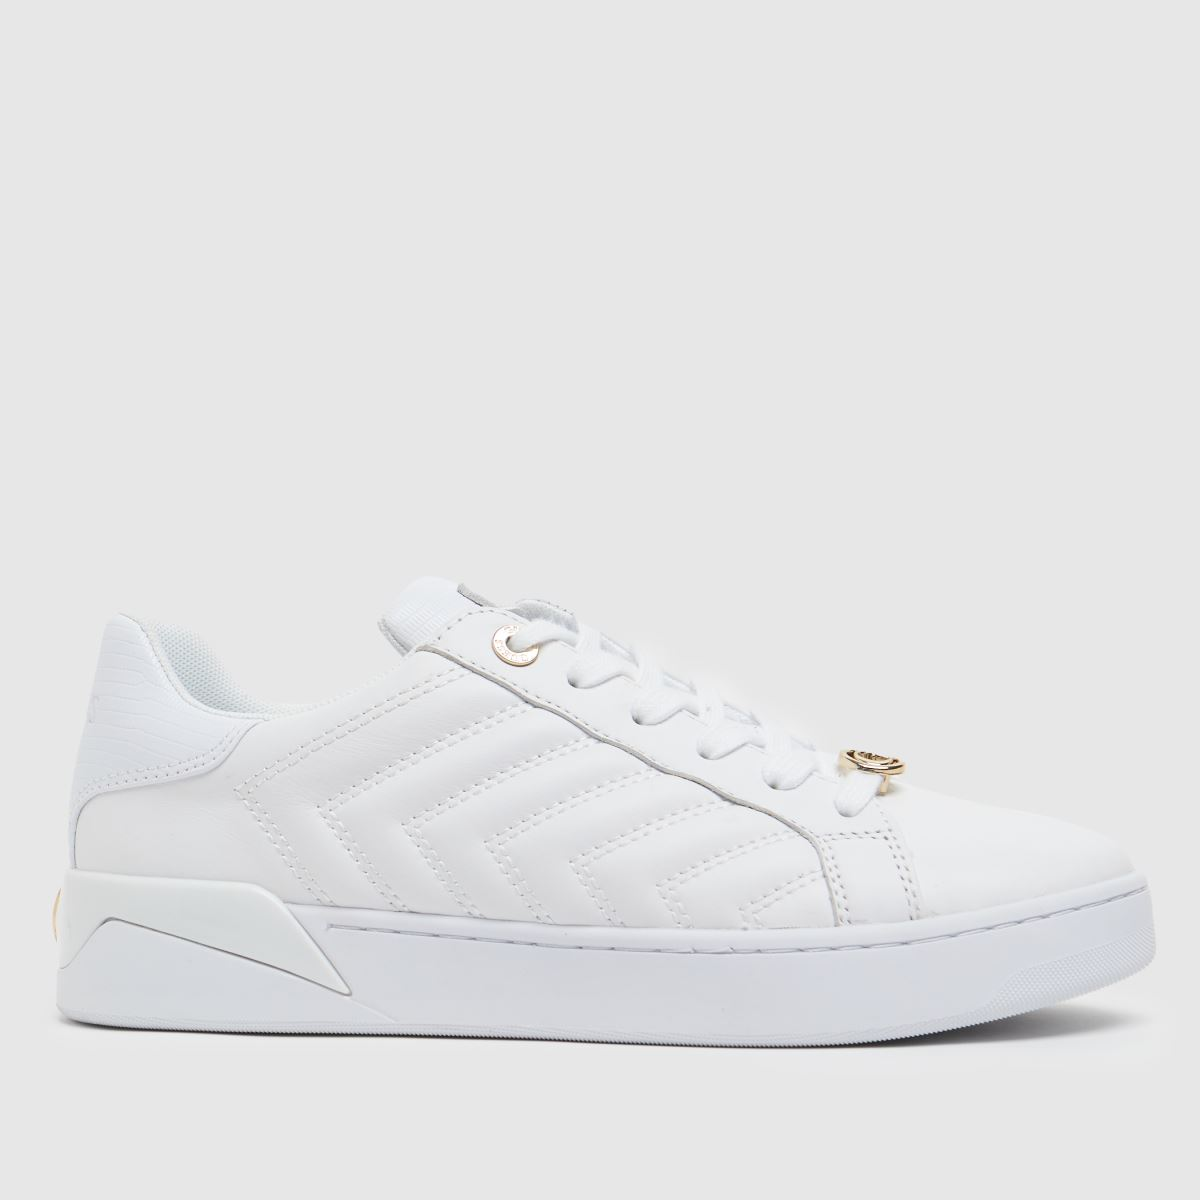 GUESS White & Gold Racheel Trainers